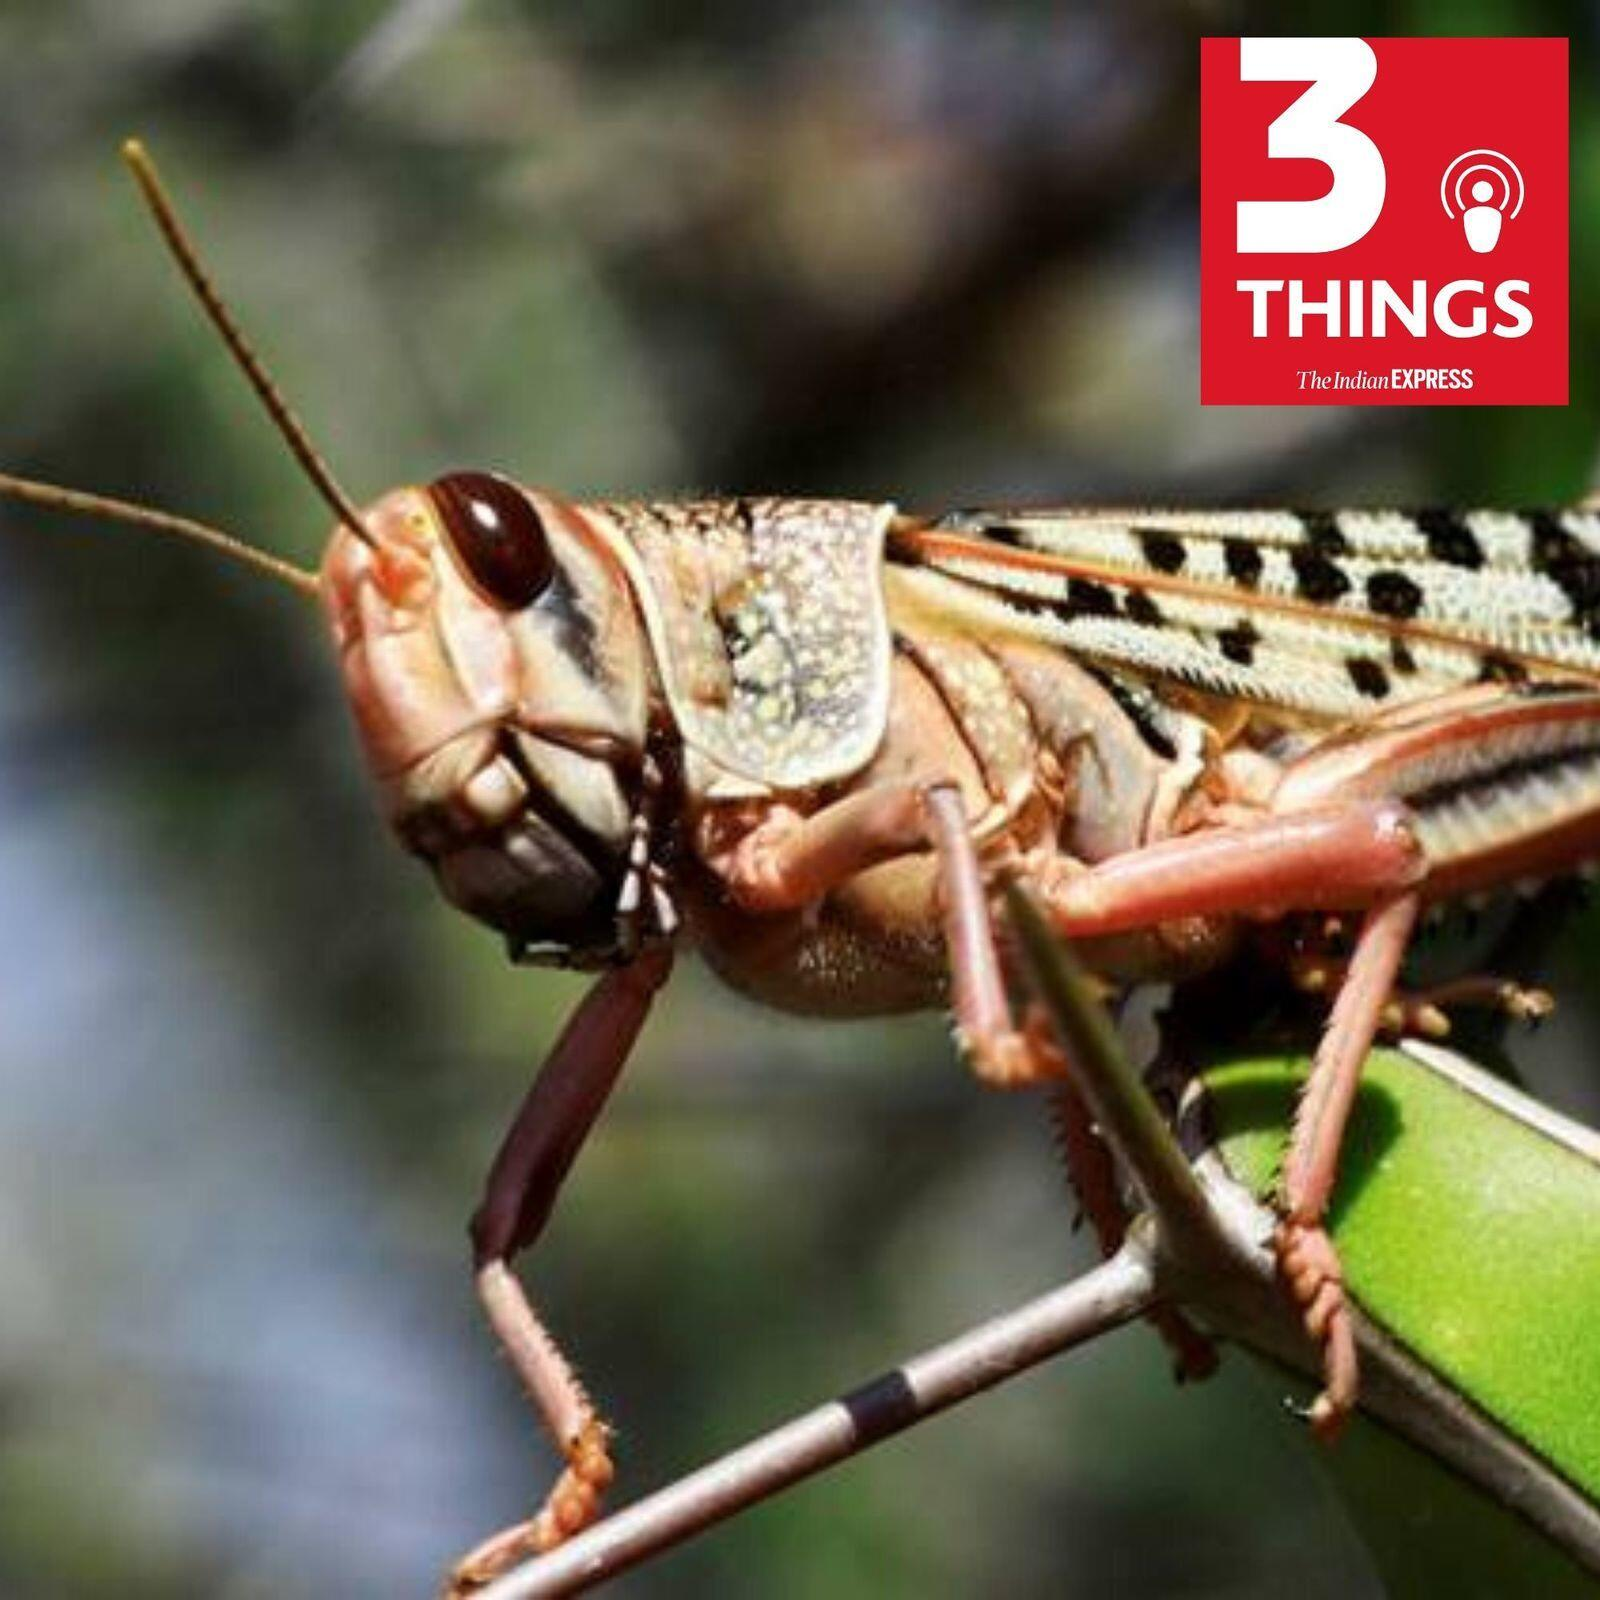 892: Desert locusts attack, deaths on Shramik special trains, why India stands by HCQ use